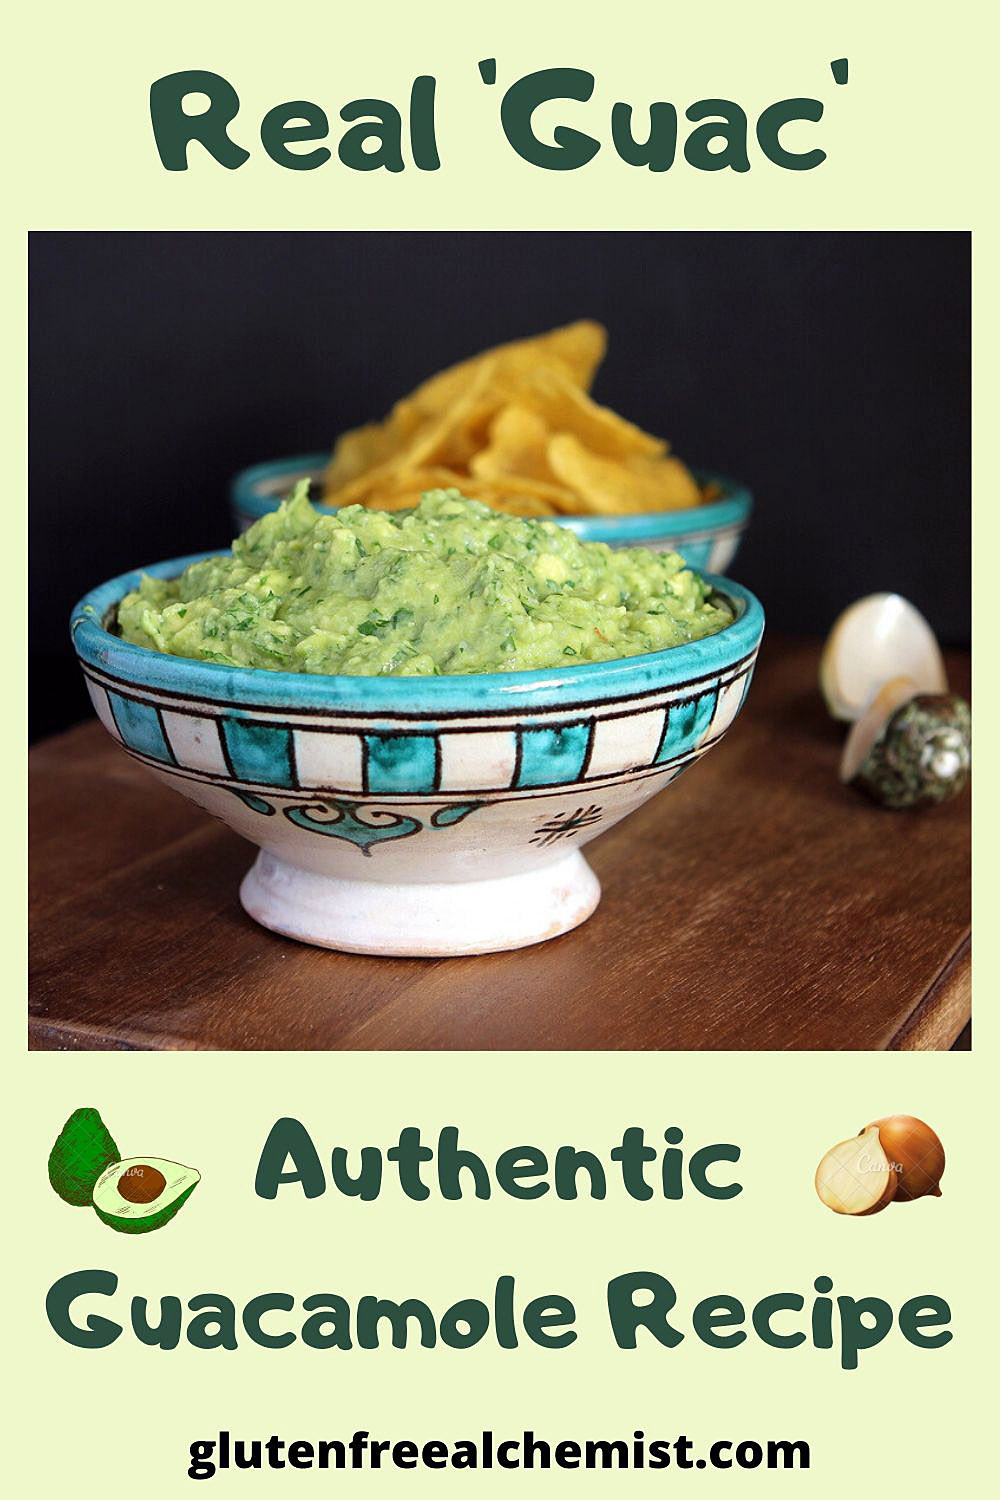 Real 'Guac' – An Authentic Guacamole Recipe